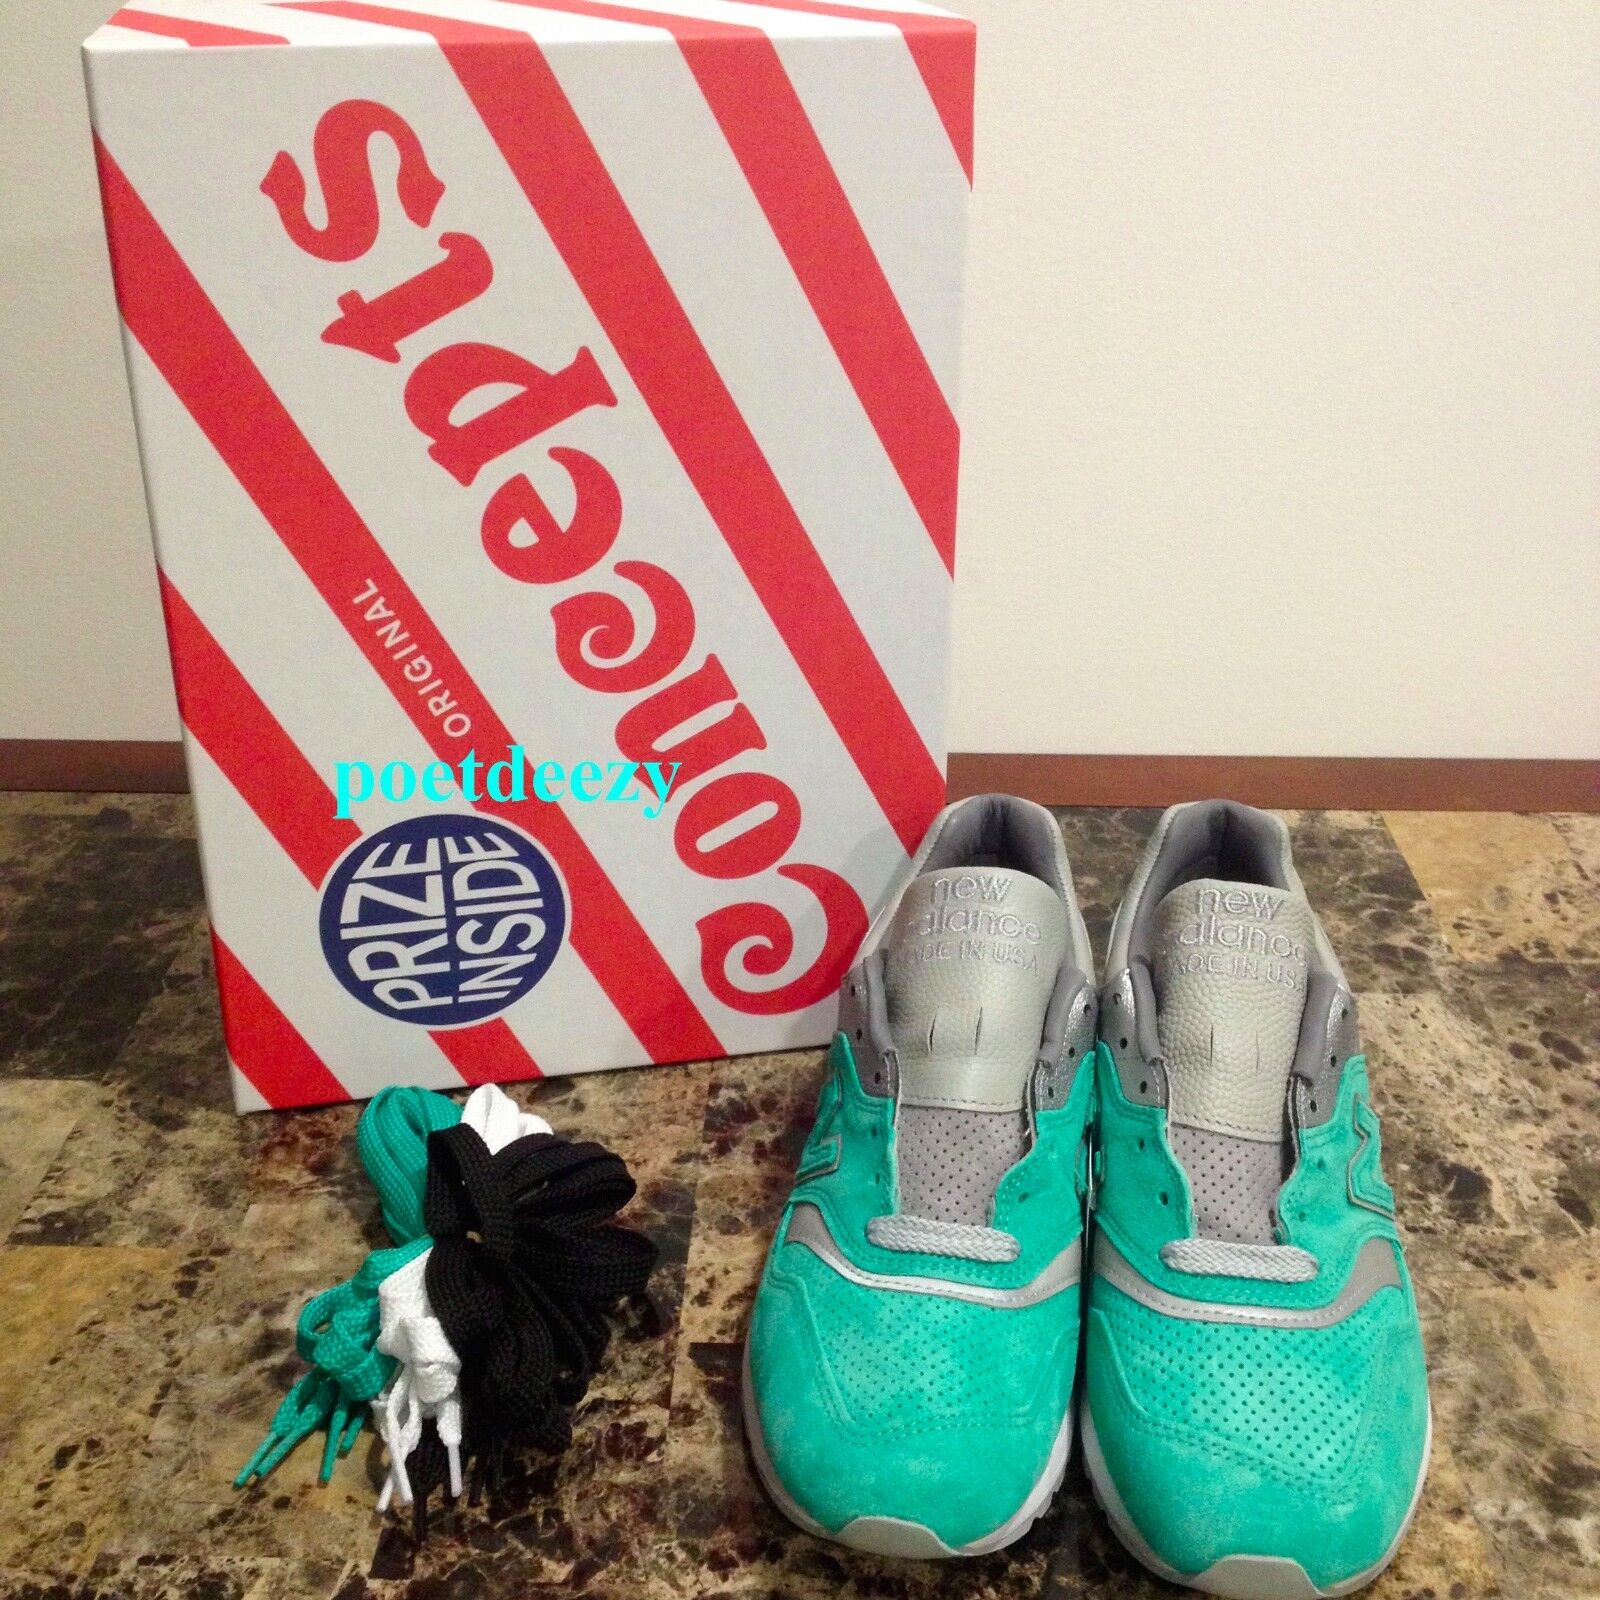 CONCEPTS X NEW BALANCE 997 NYC New York City Rivalry Size 7.5 8 8.5